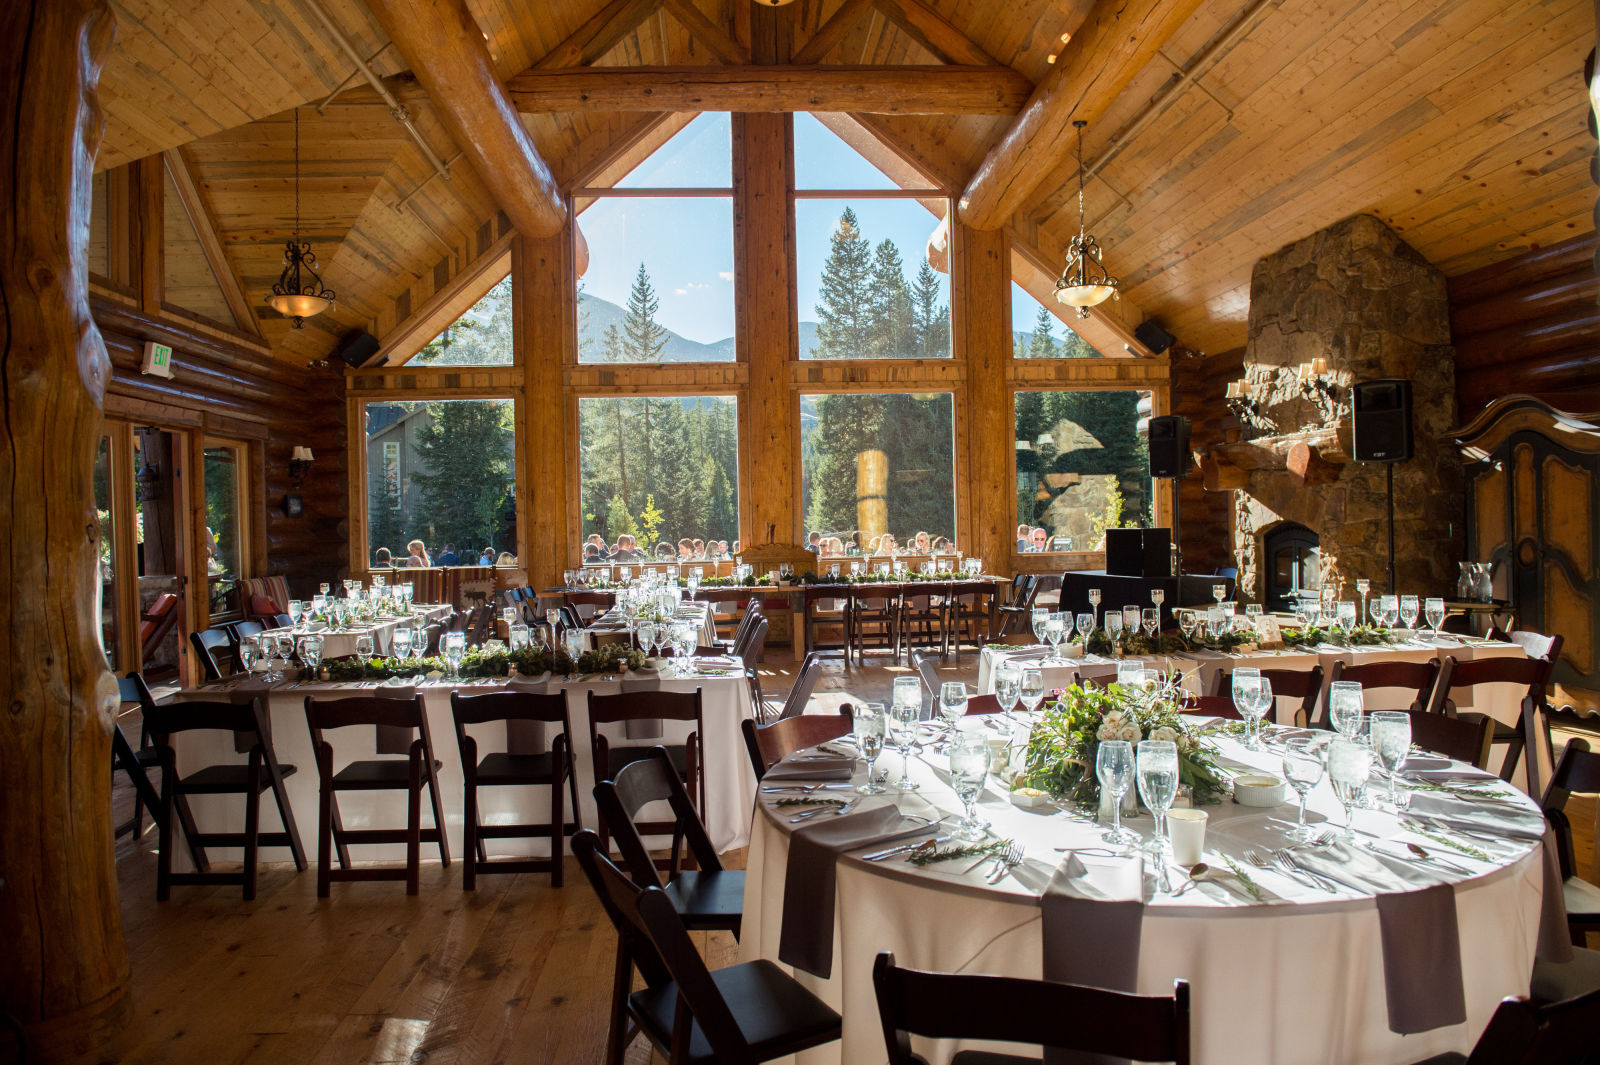 breckenridge nordic center wedding distinctive mountain